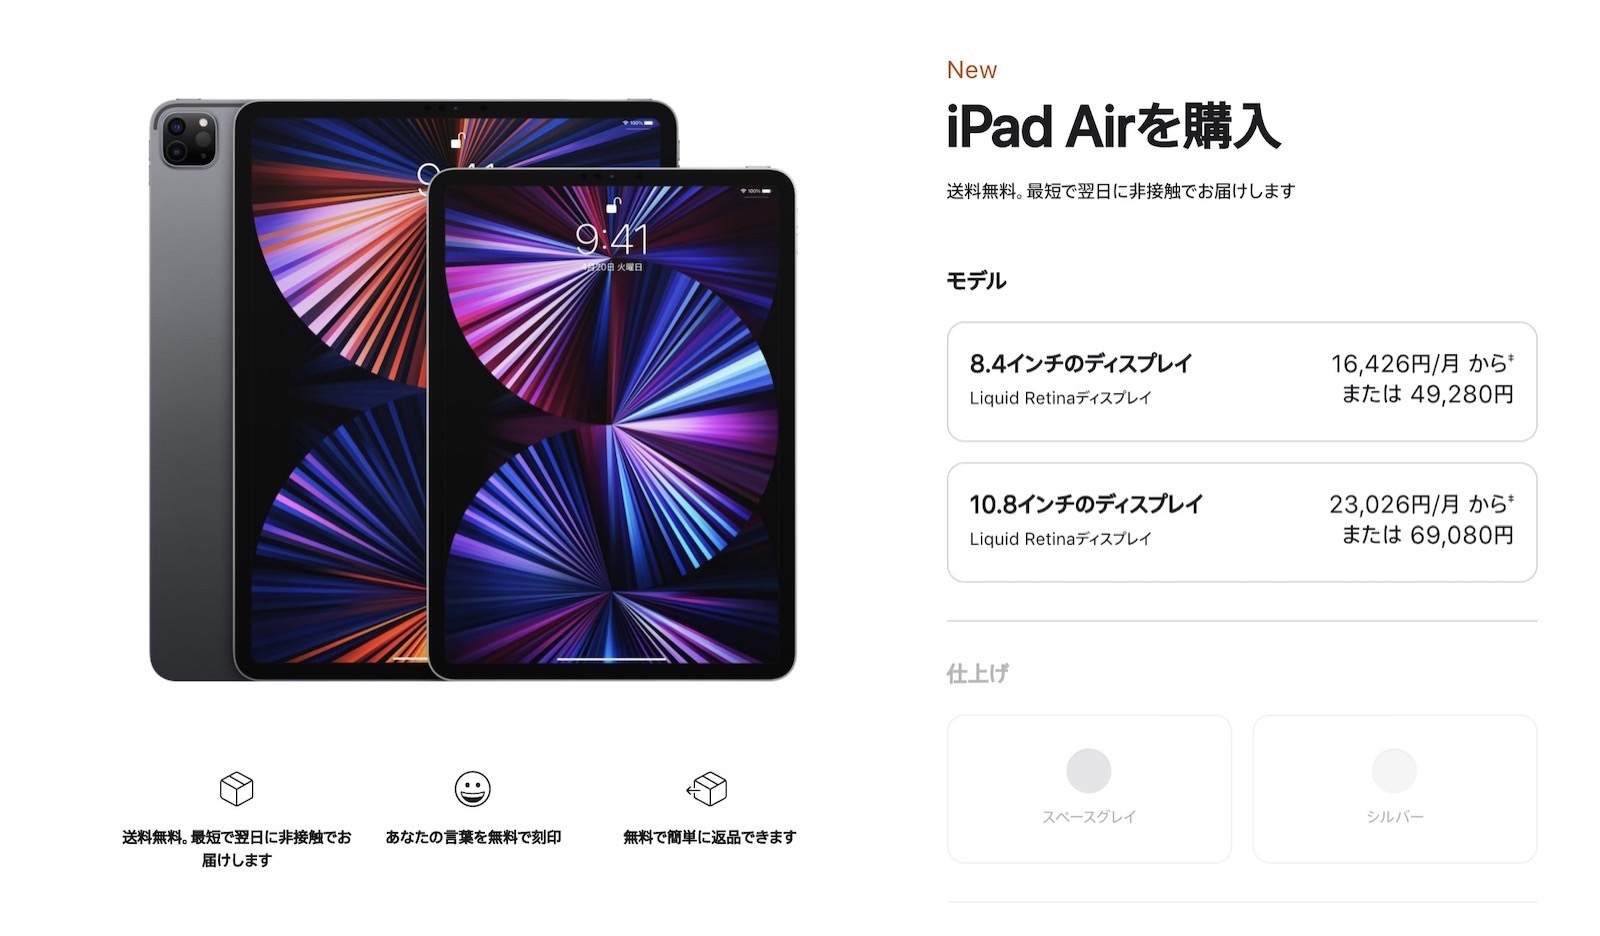 Ipad air devices image